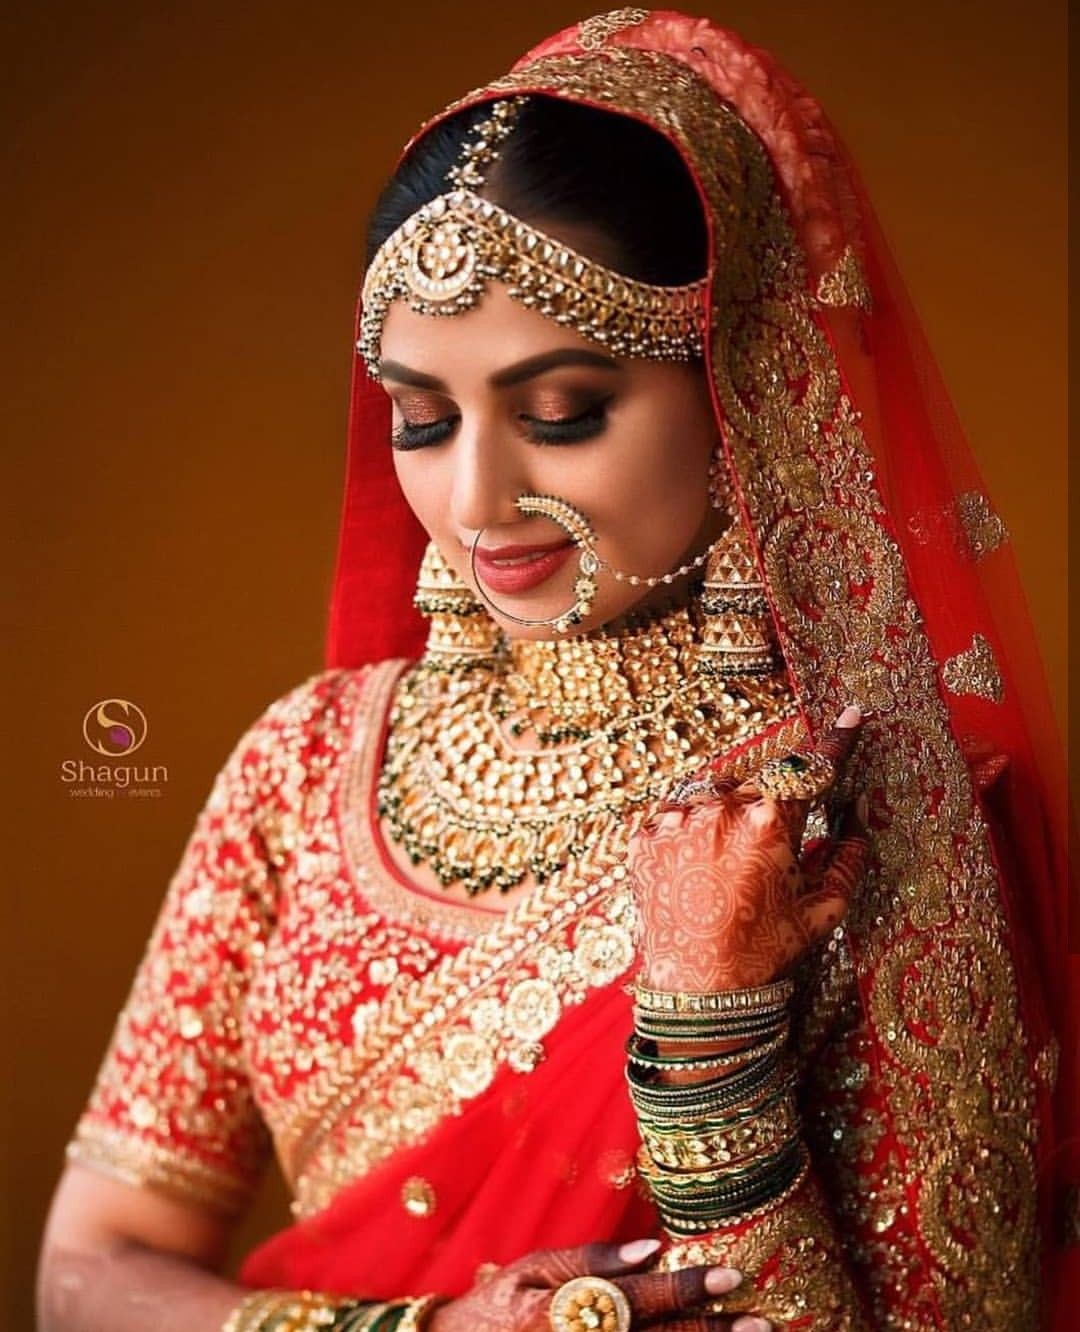 Indian Wedding Photography Ideas: Wedding Photography Ideas In 2019